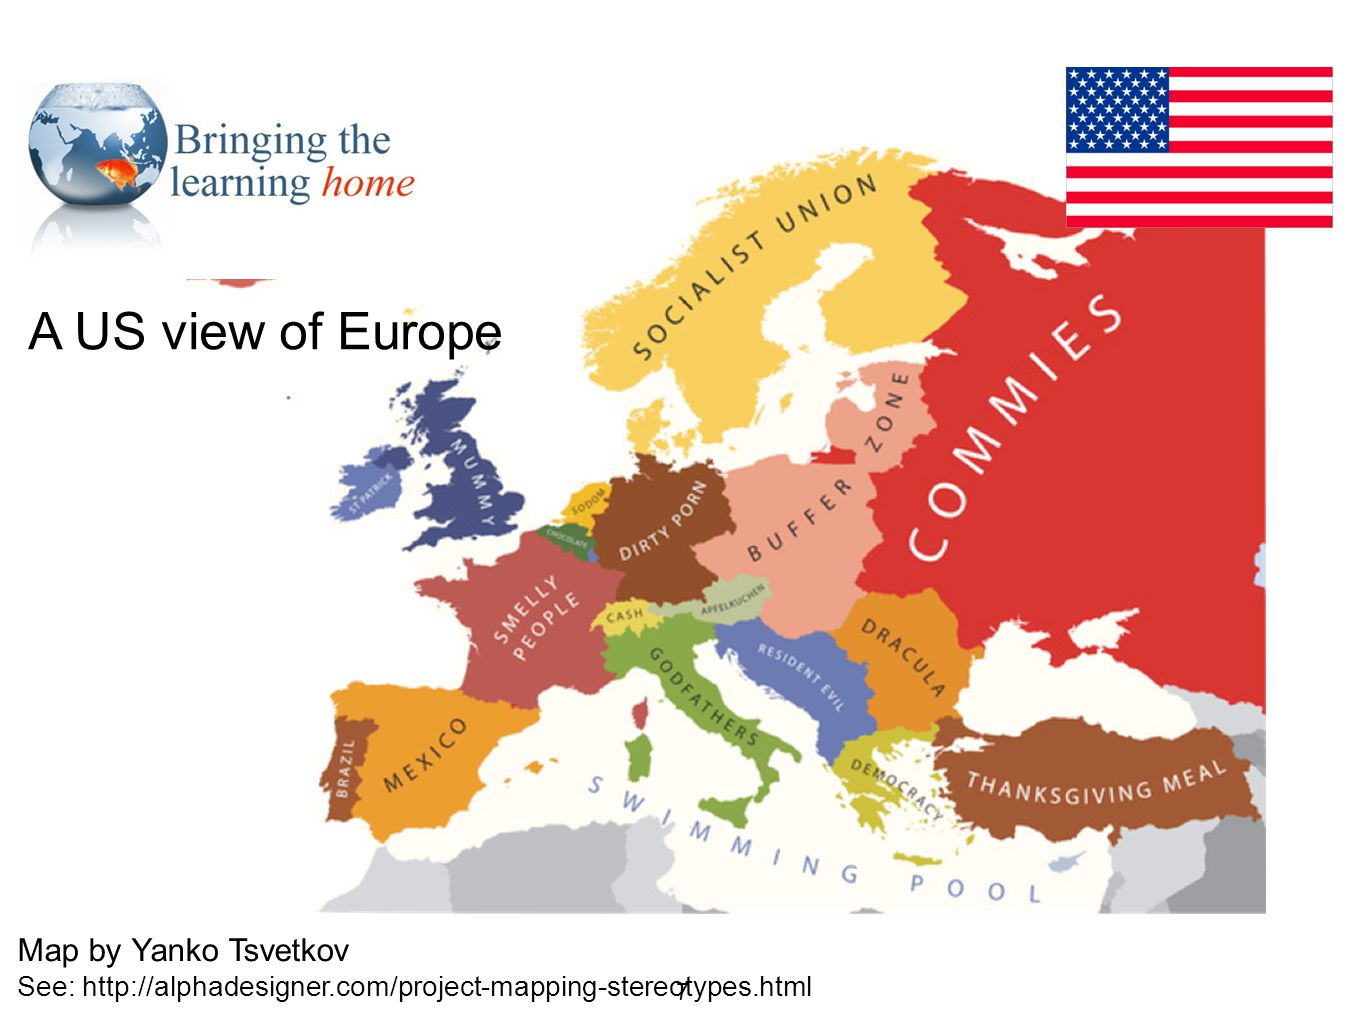 A US view of Europe Map by Yanko Tsvetkov See: http://alphadesigner.com/project-mapping-stereotypes.html 7